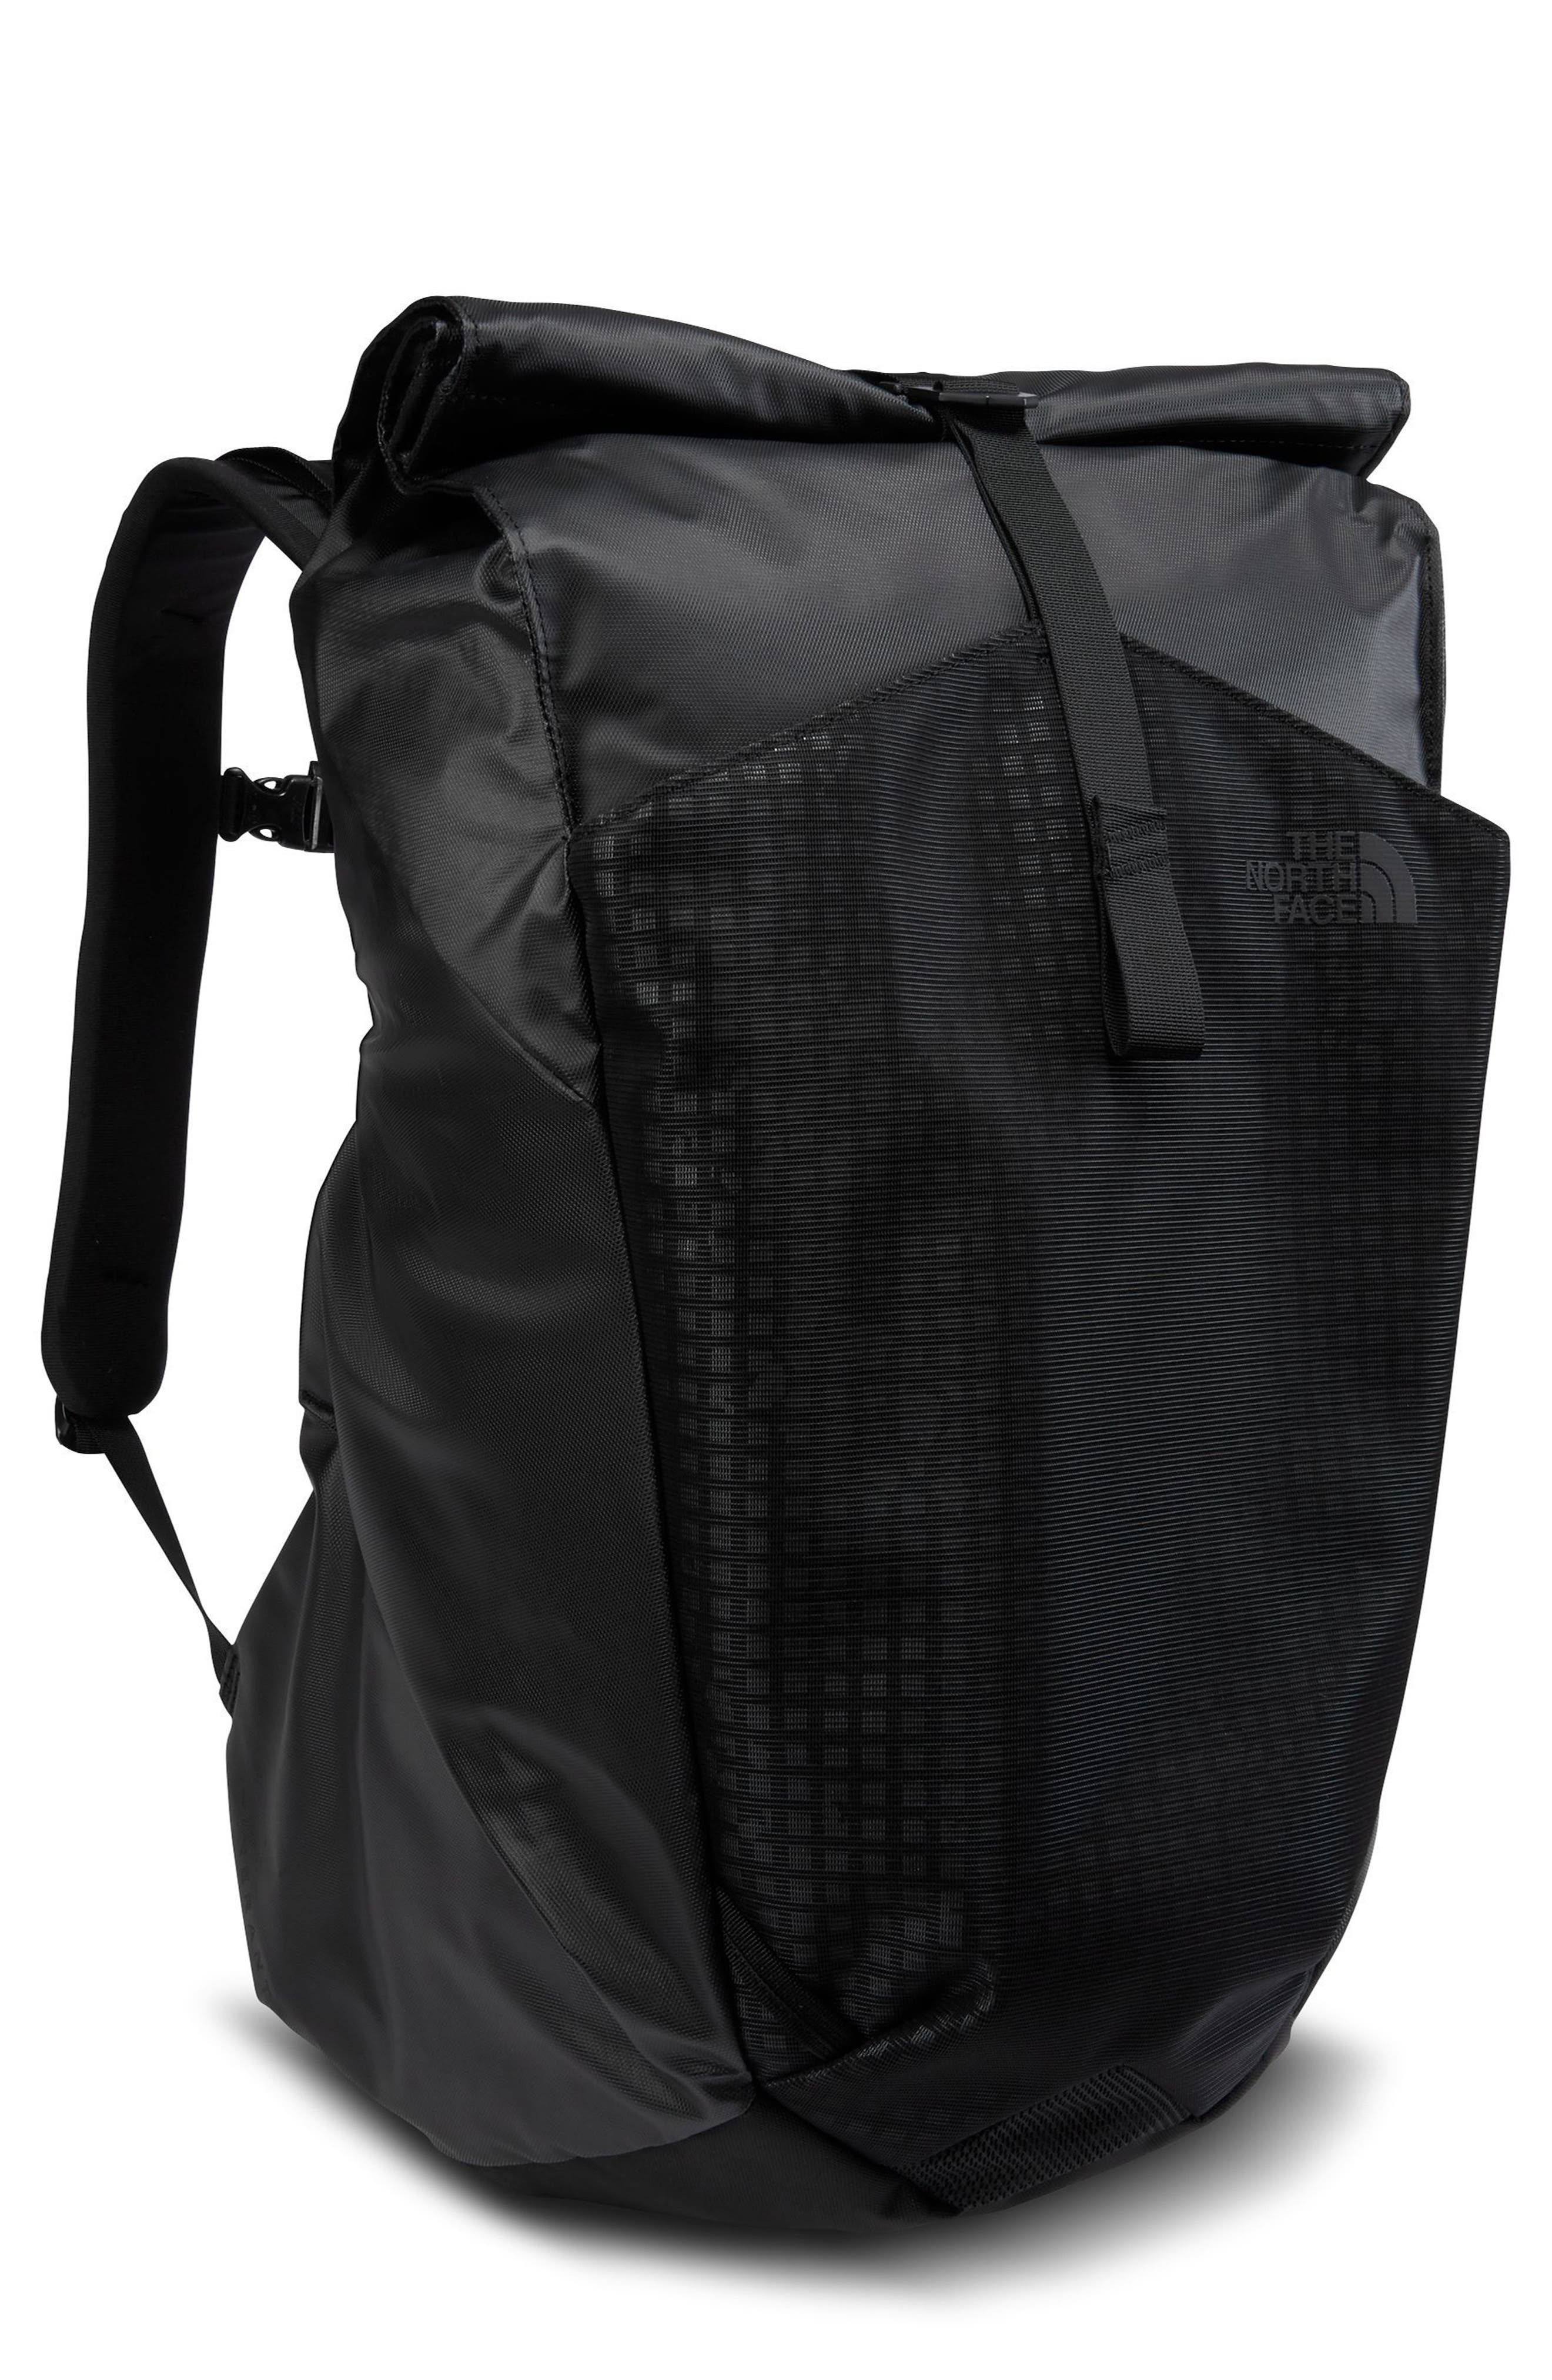 Itinerant Backpack,                         Main,                         color, Tnf Black